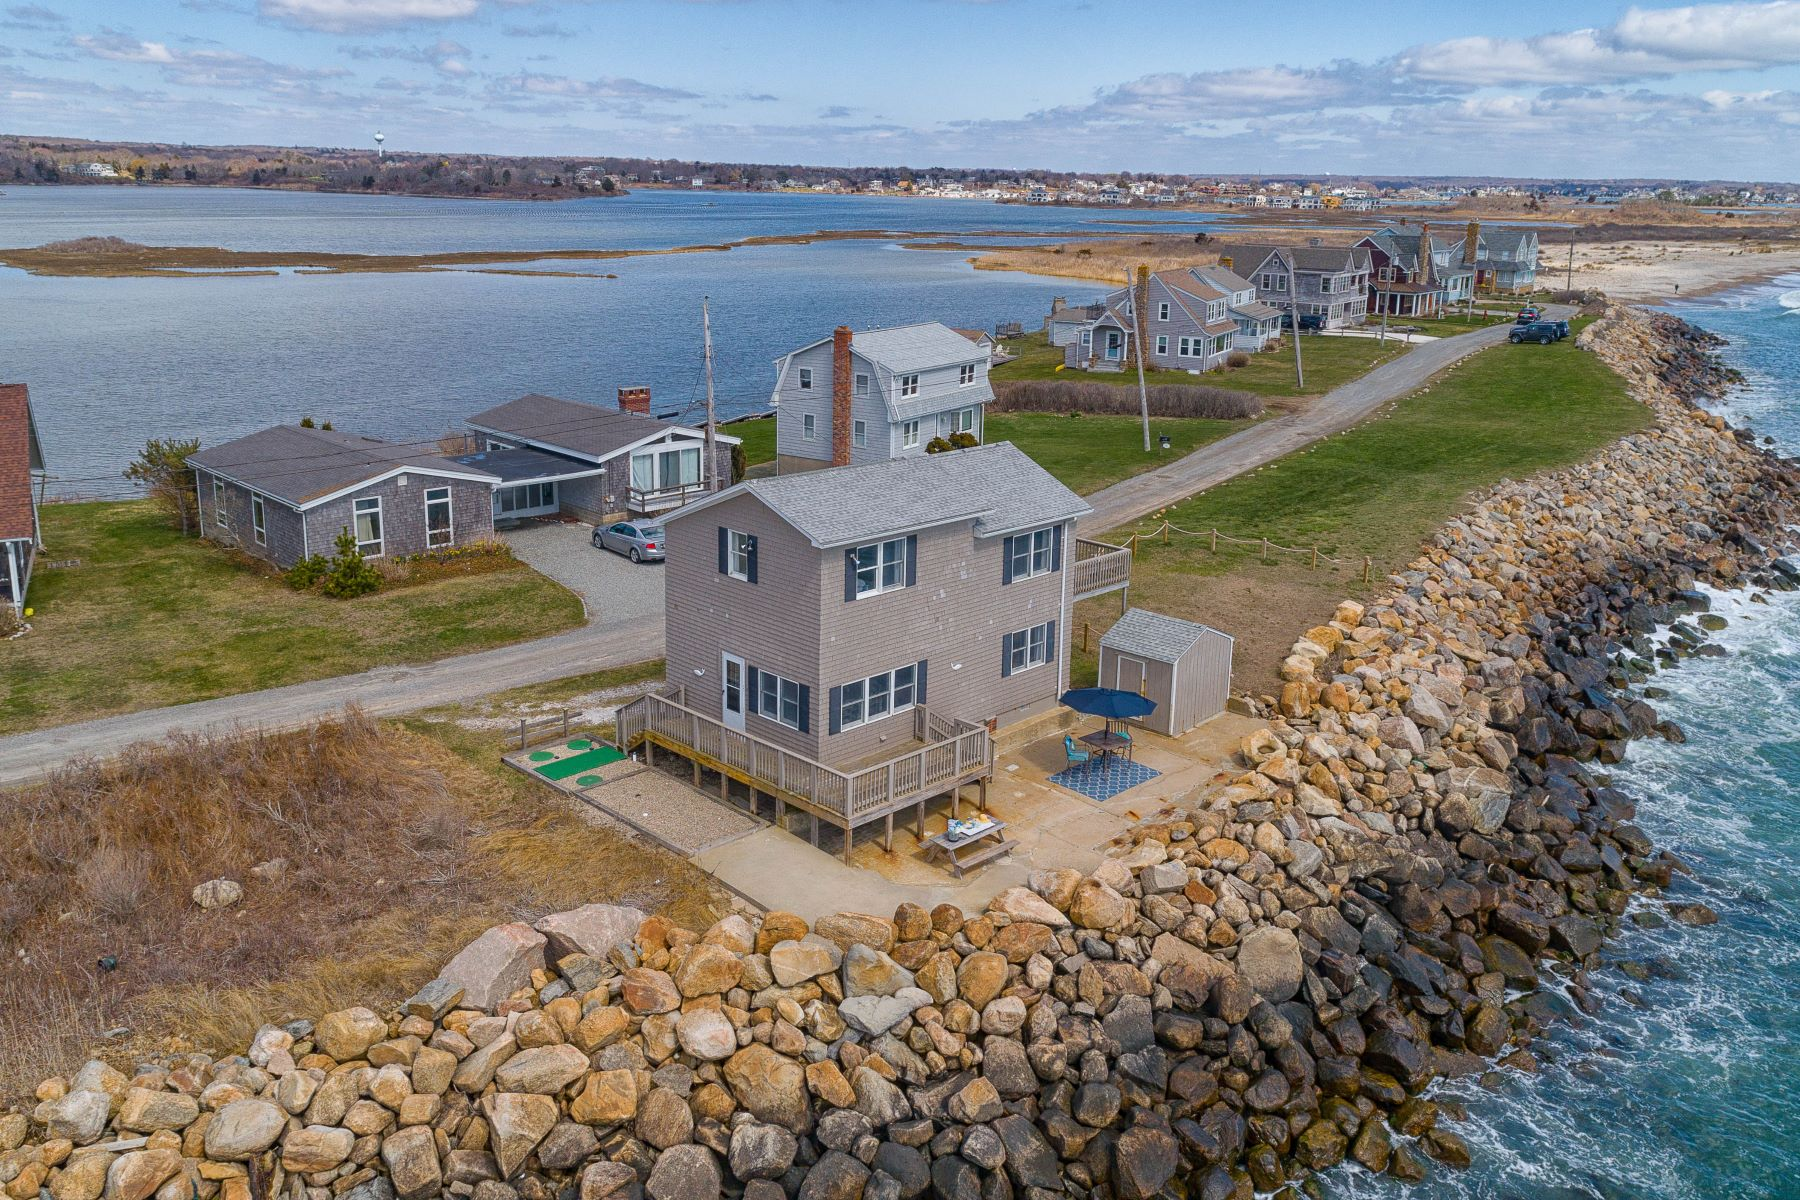 Single Family Homes for Sale at 149 Ocean Avenue, South Kingstown, RI 149 Ocean Avenue South Kingstown, Rhode Island 02879 United States